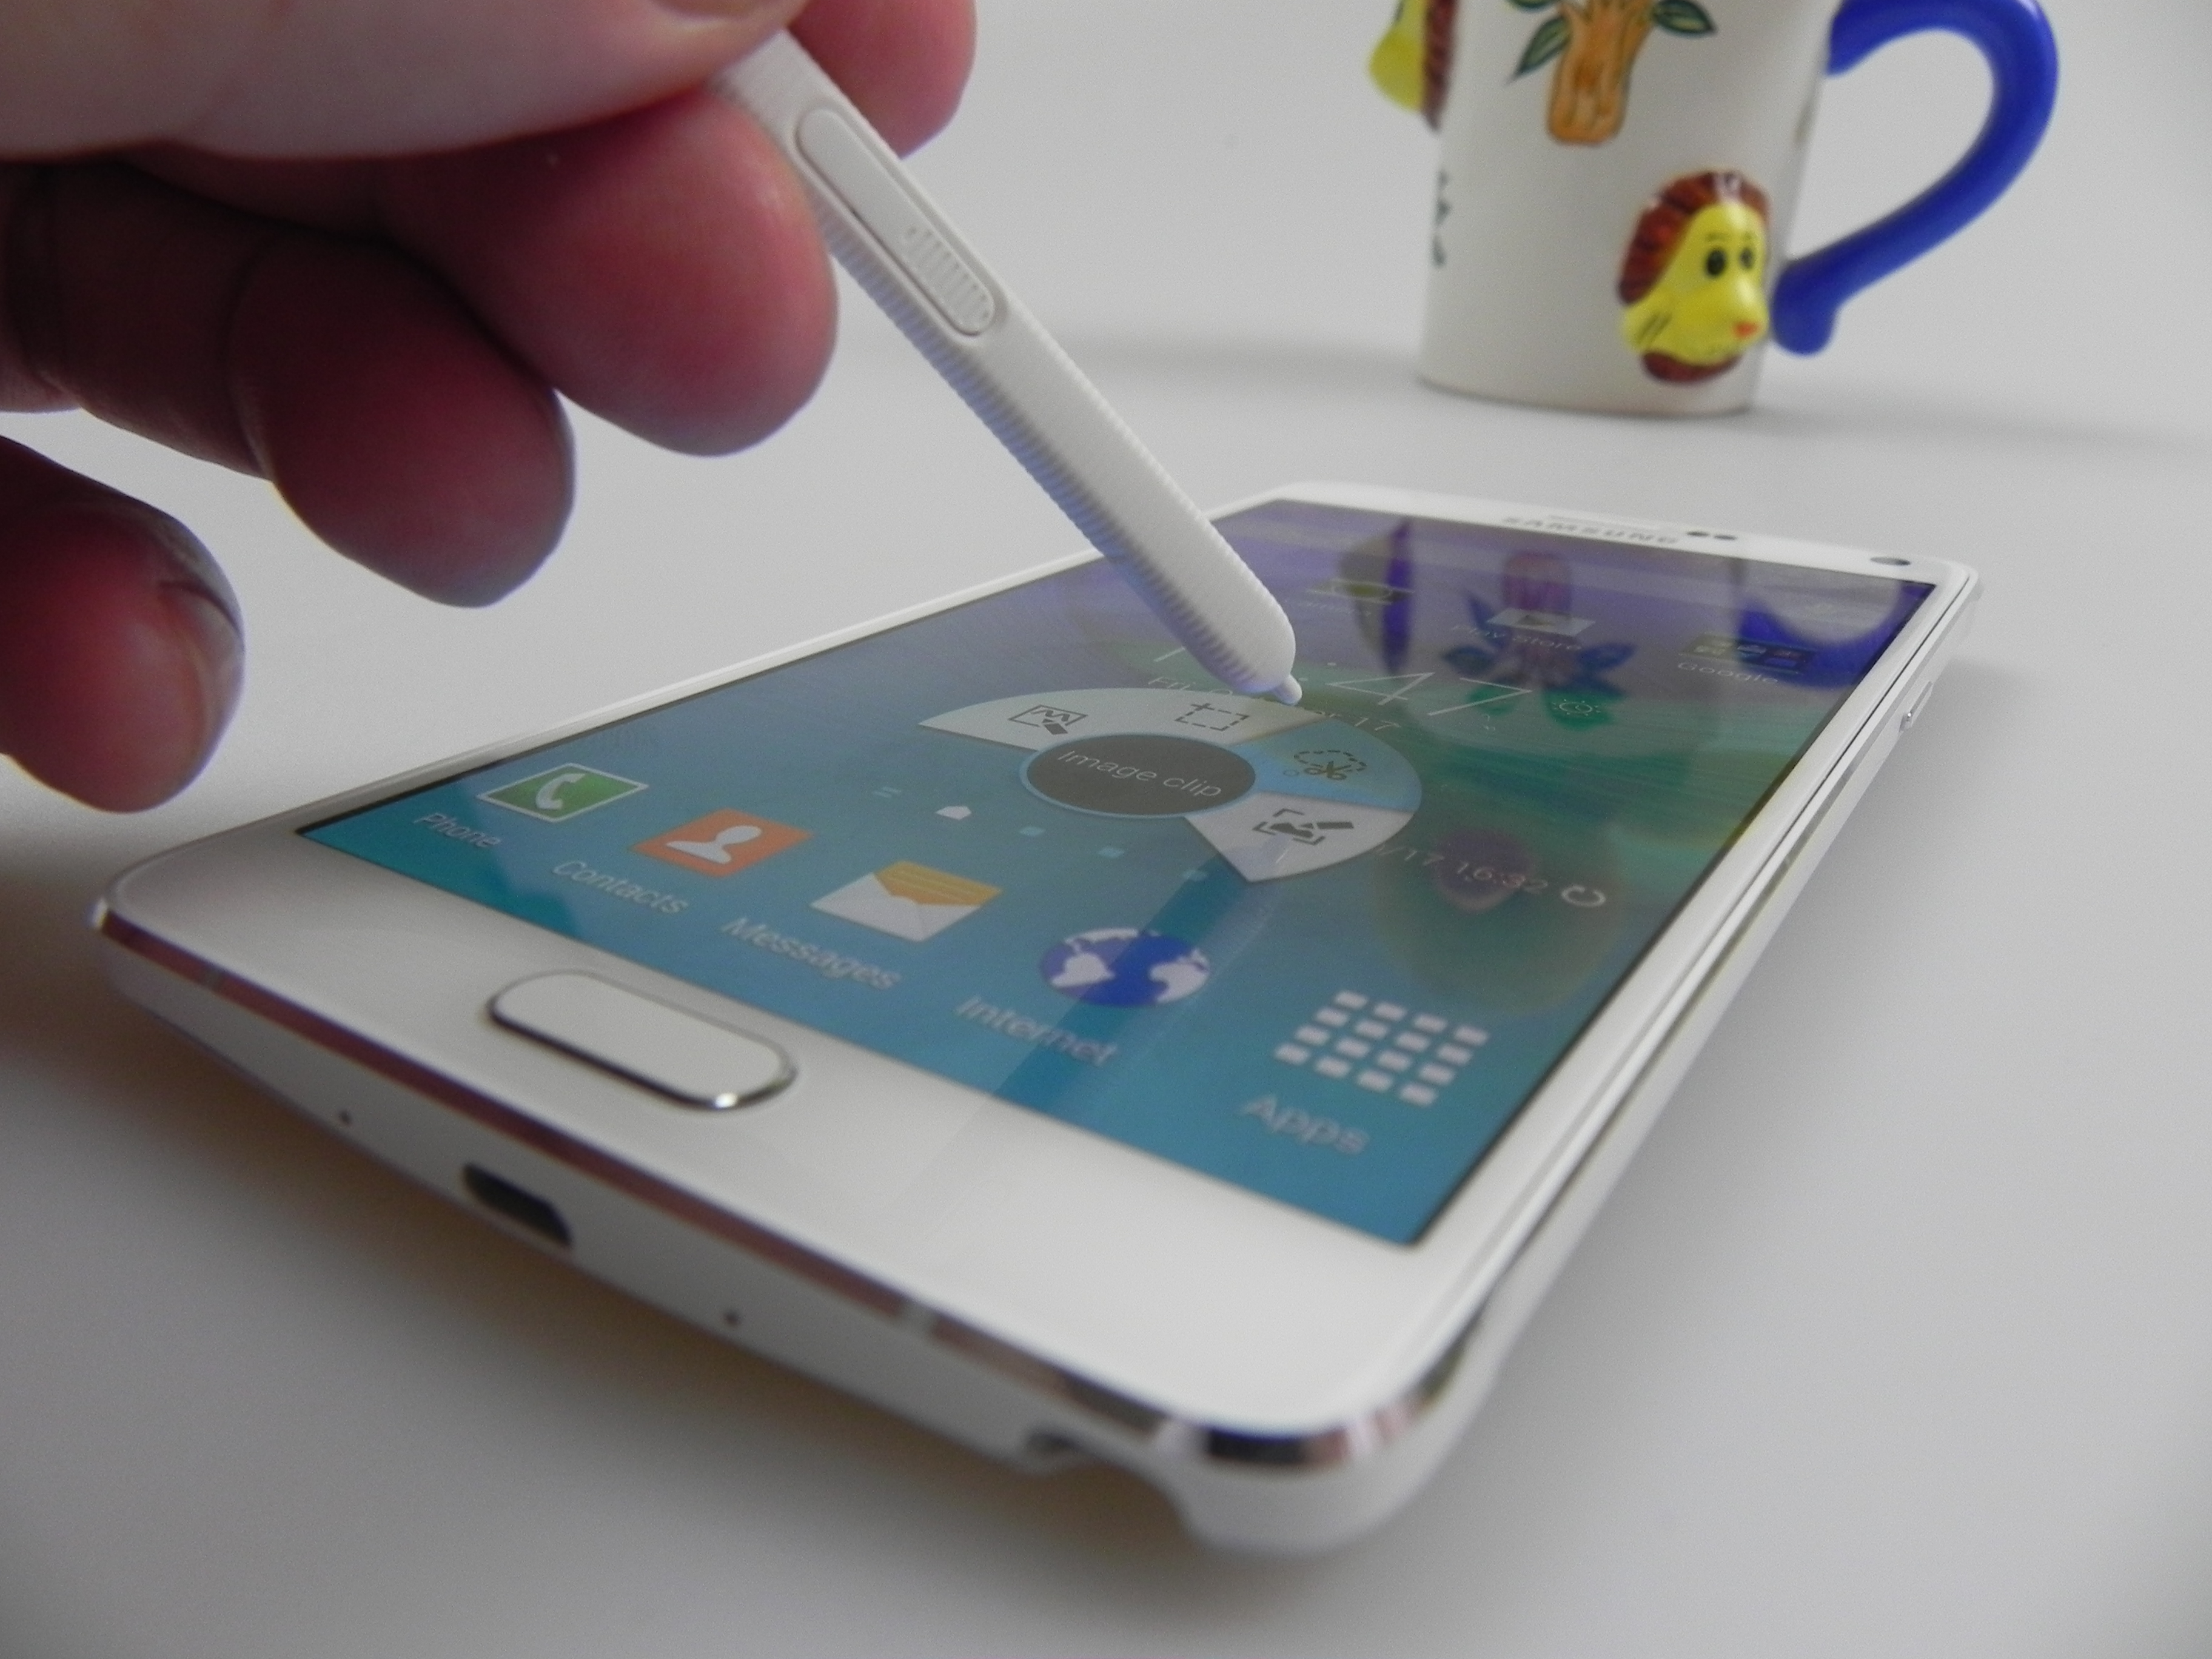 Samsung Galaxy Note 4 Review: Galaxy Note Goes Metal, Upgrades Stylus